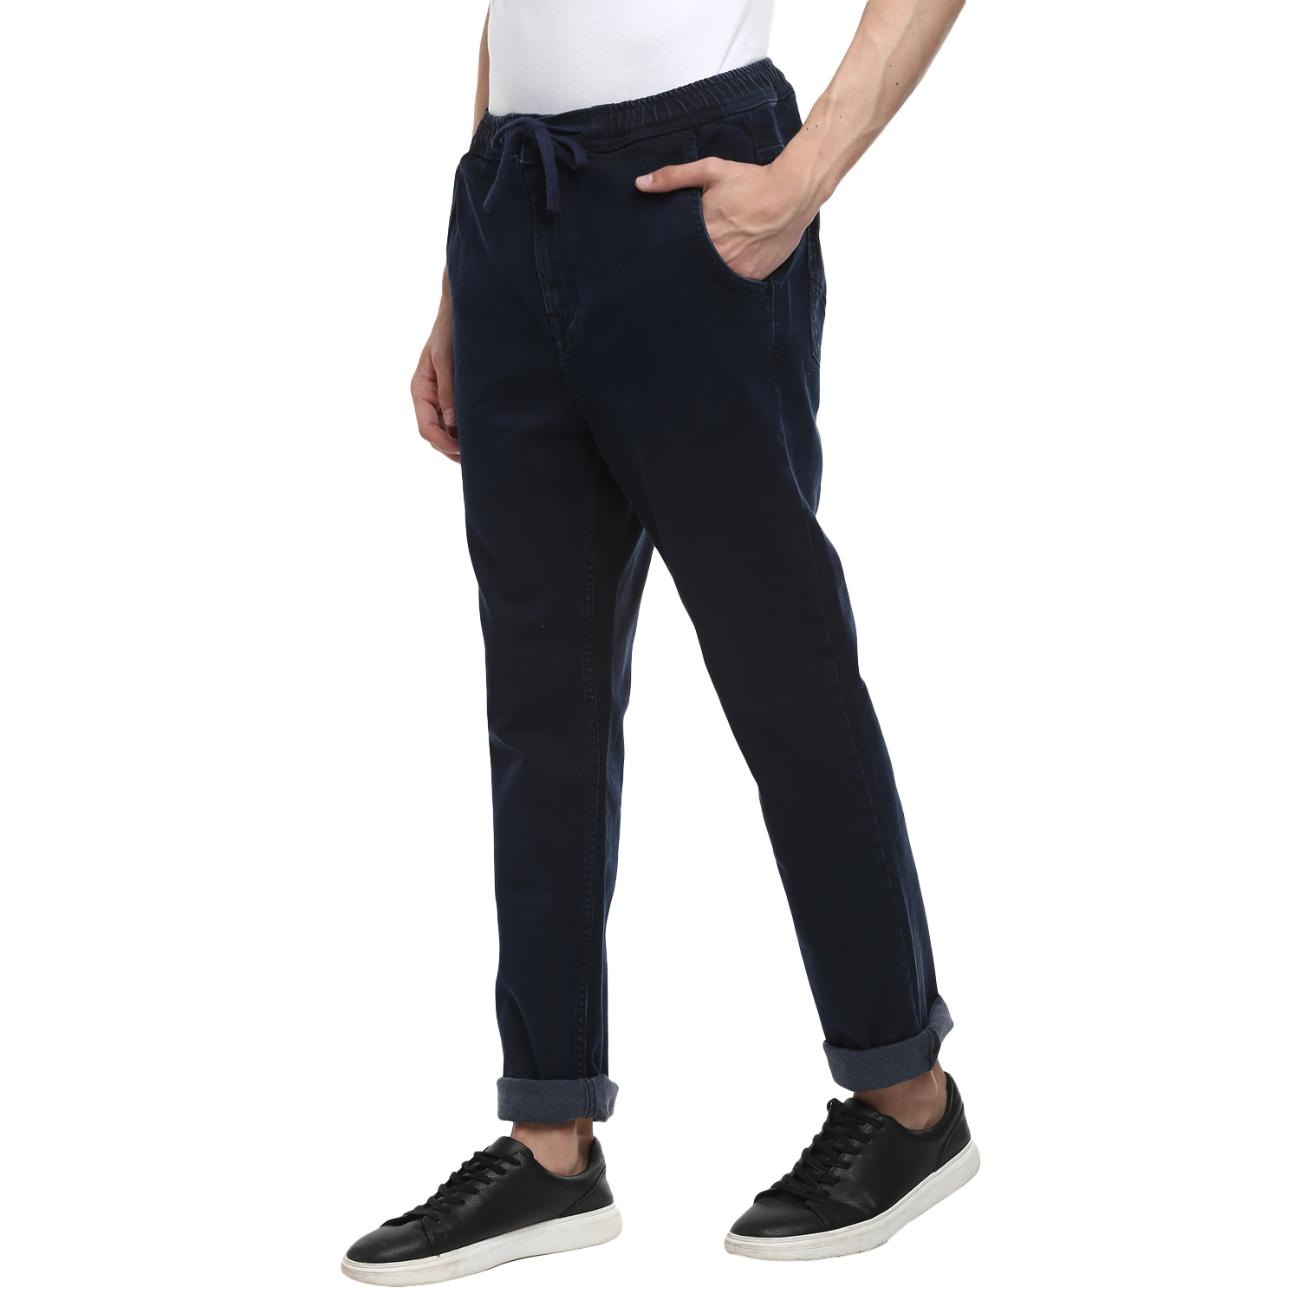 Blue Narrow Jeans For Men at Red Chief